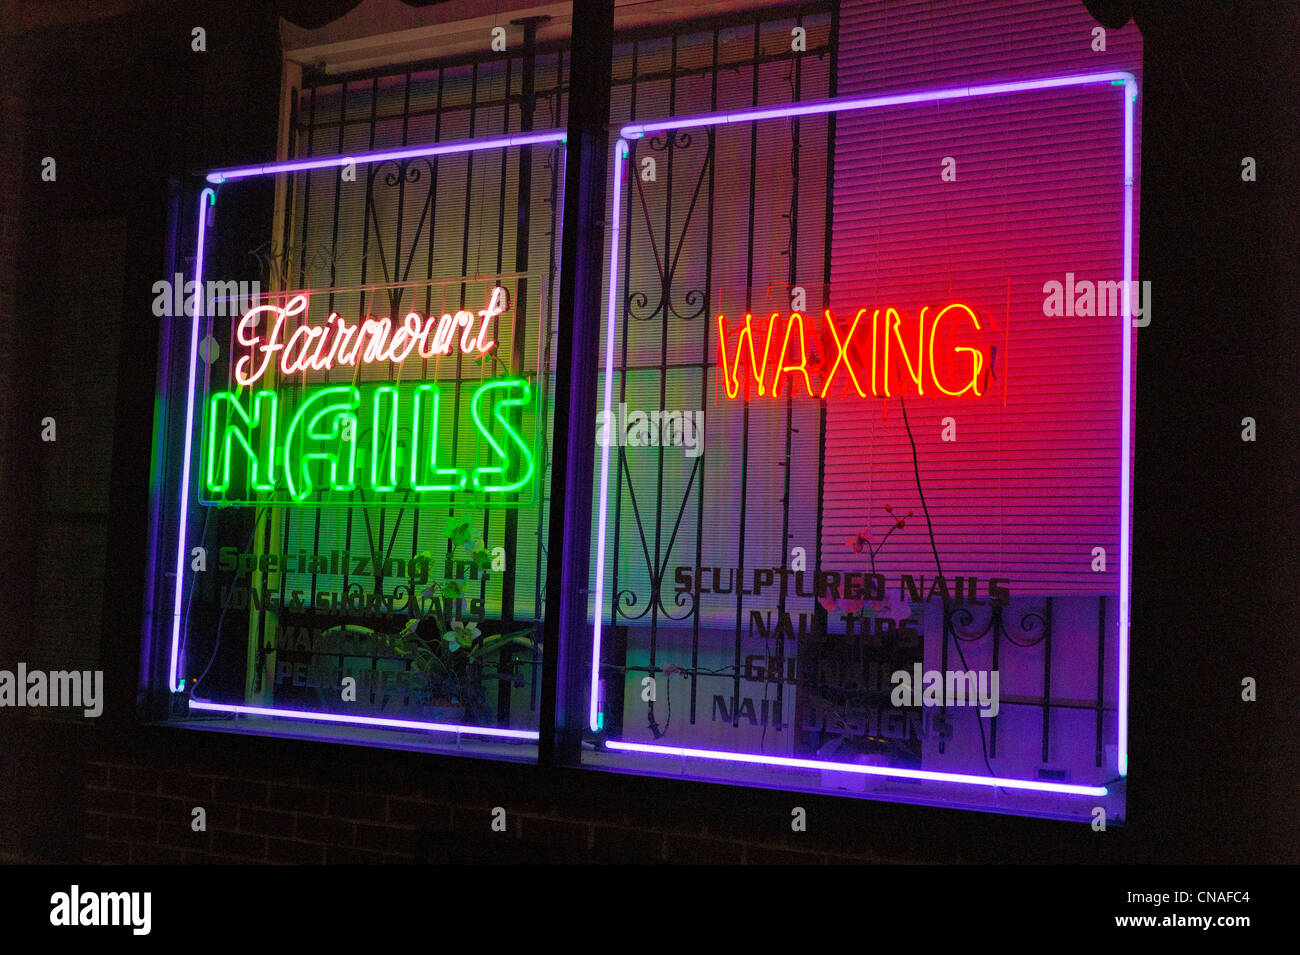 Neon signs lit at night in the window of a nails & waxing shop, Philadelphia, Pennsylvania, USA - Stock Image